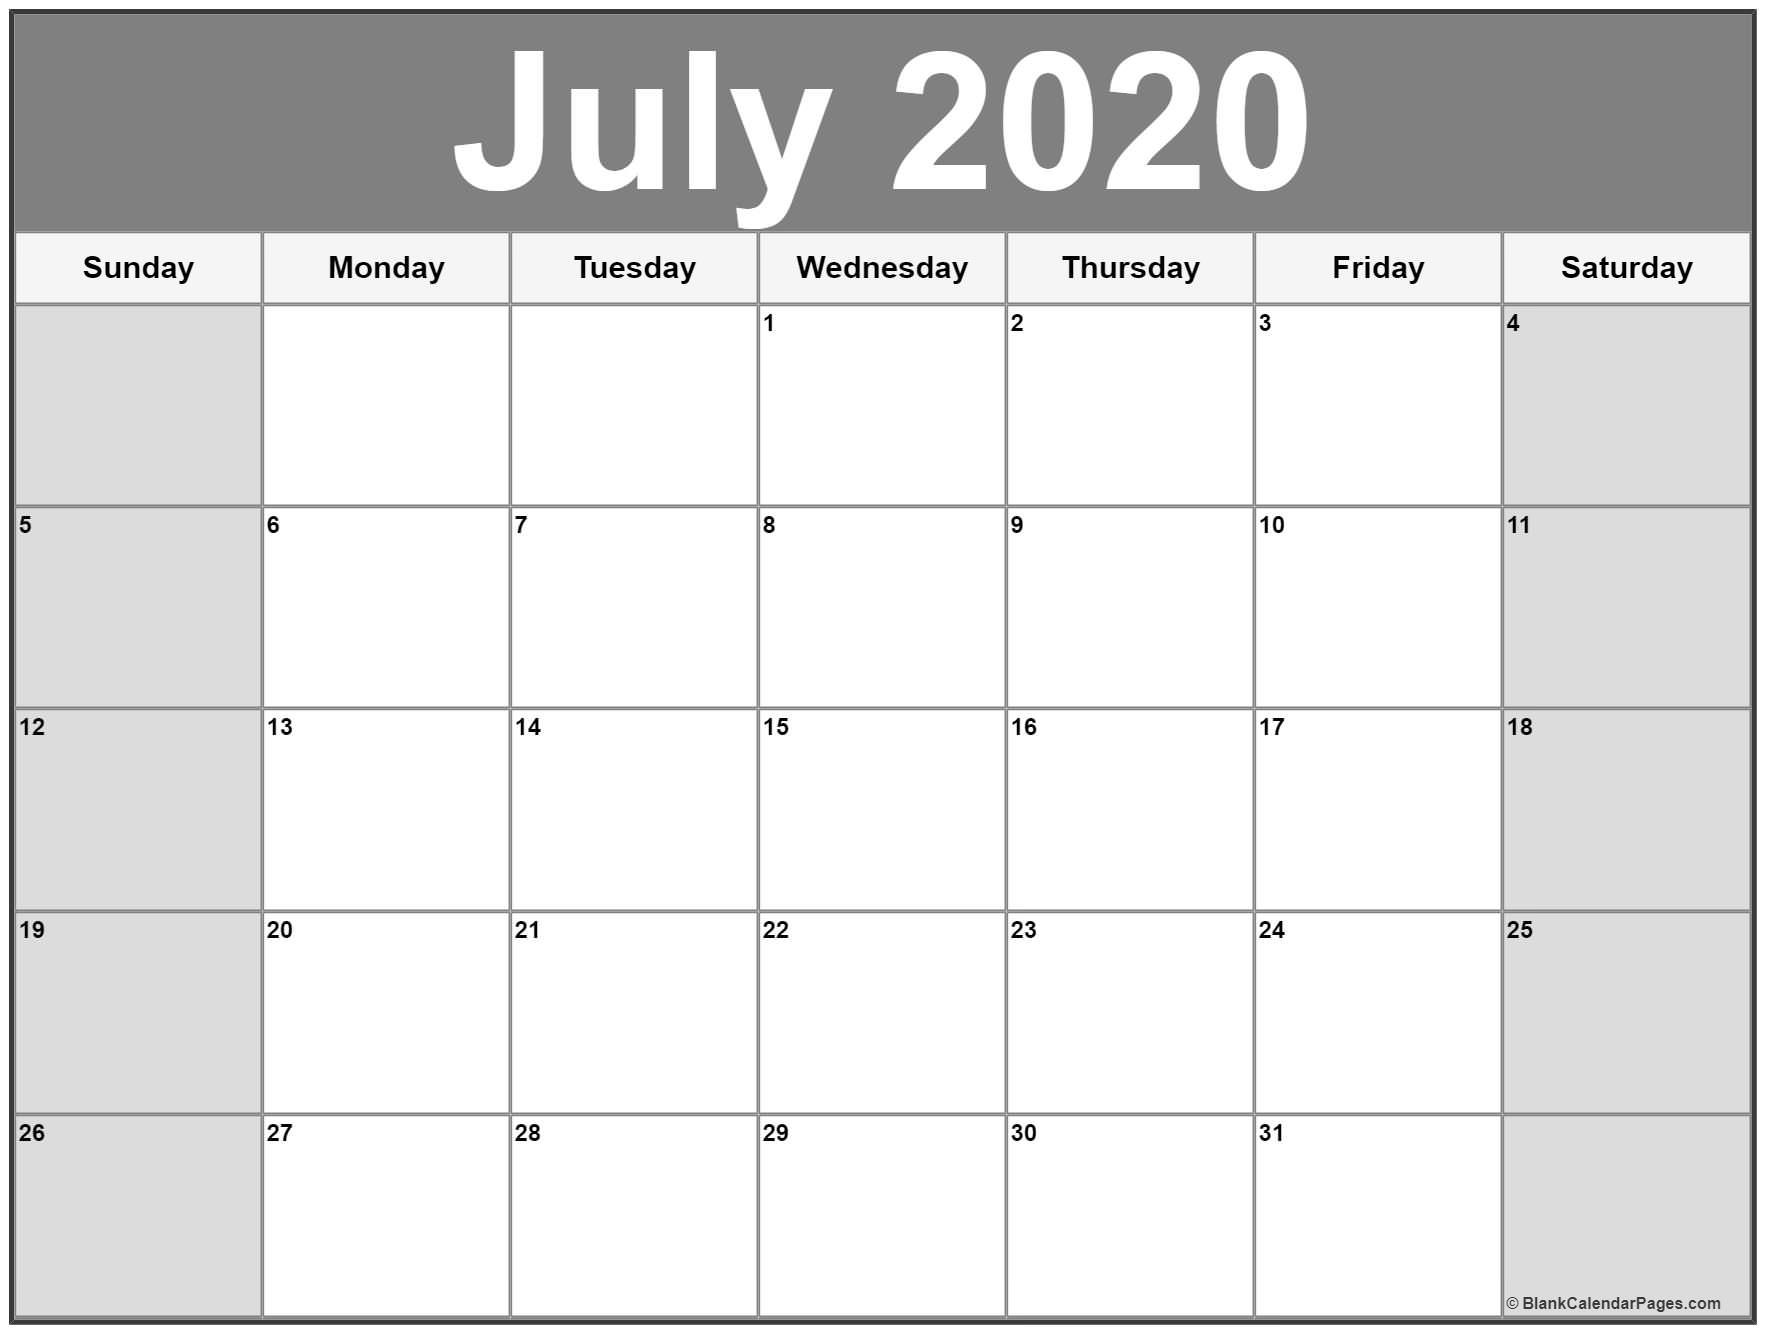 Printable Calendar July 2020.July 2020 Printable Calendar Template 2020calendars